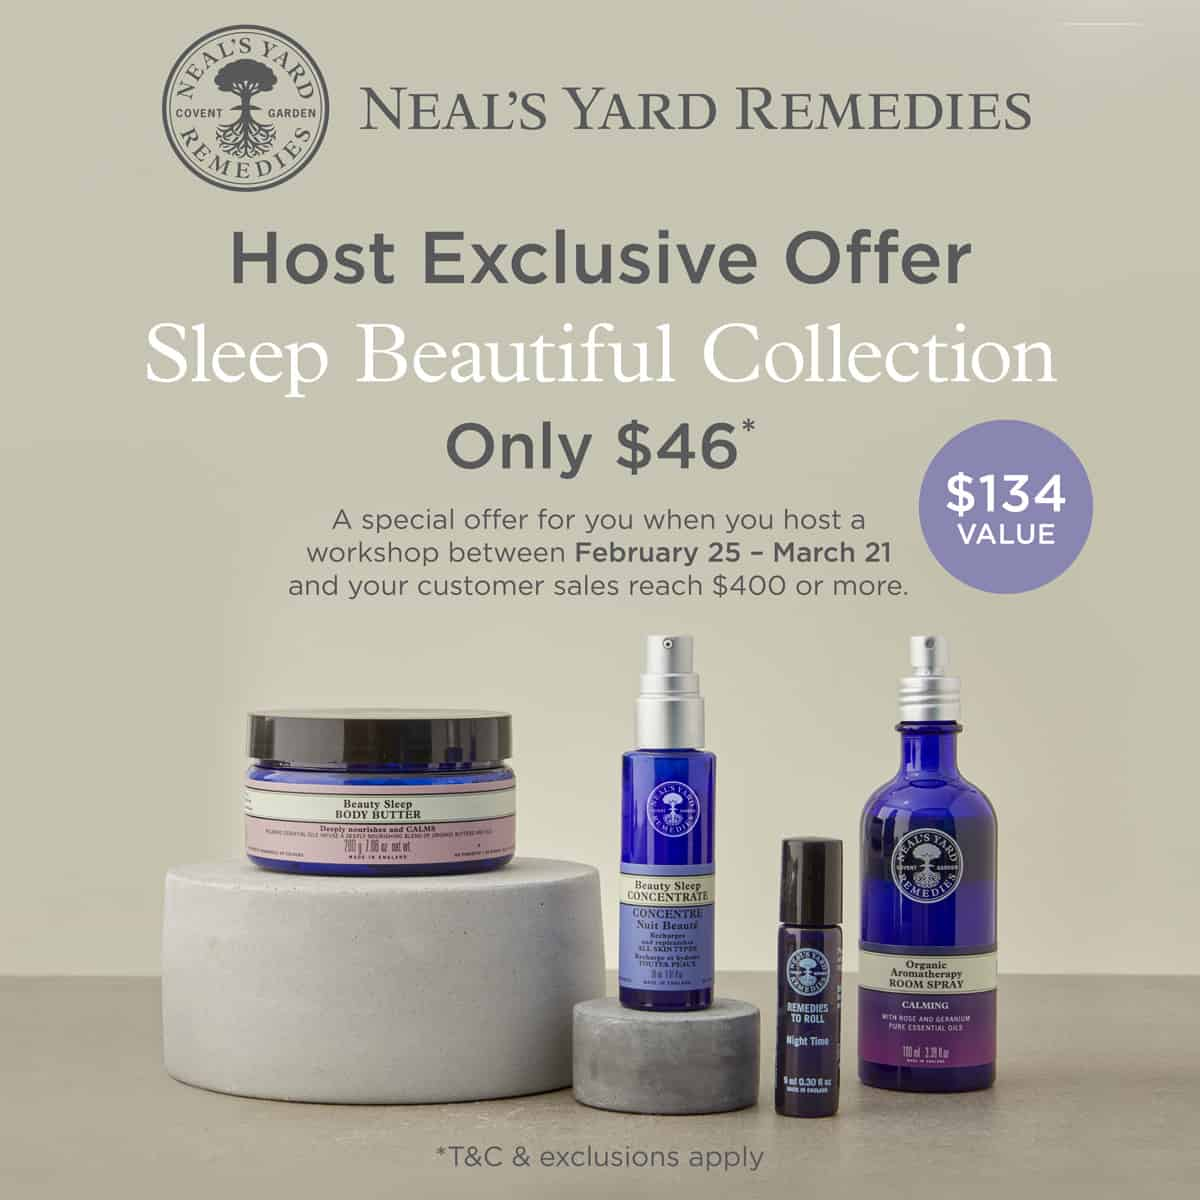 Sleep Beautiful Collection - Hostess Exclusive - March 2019. NYR Organic products.